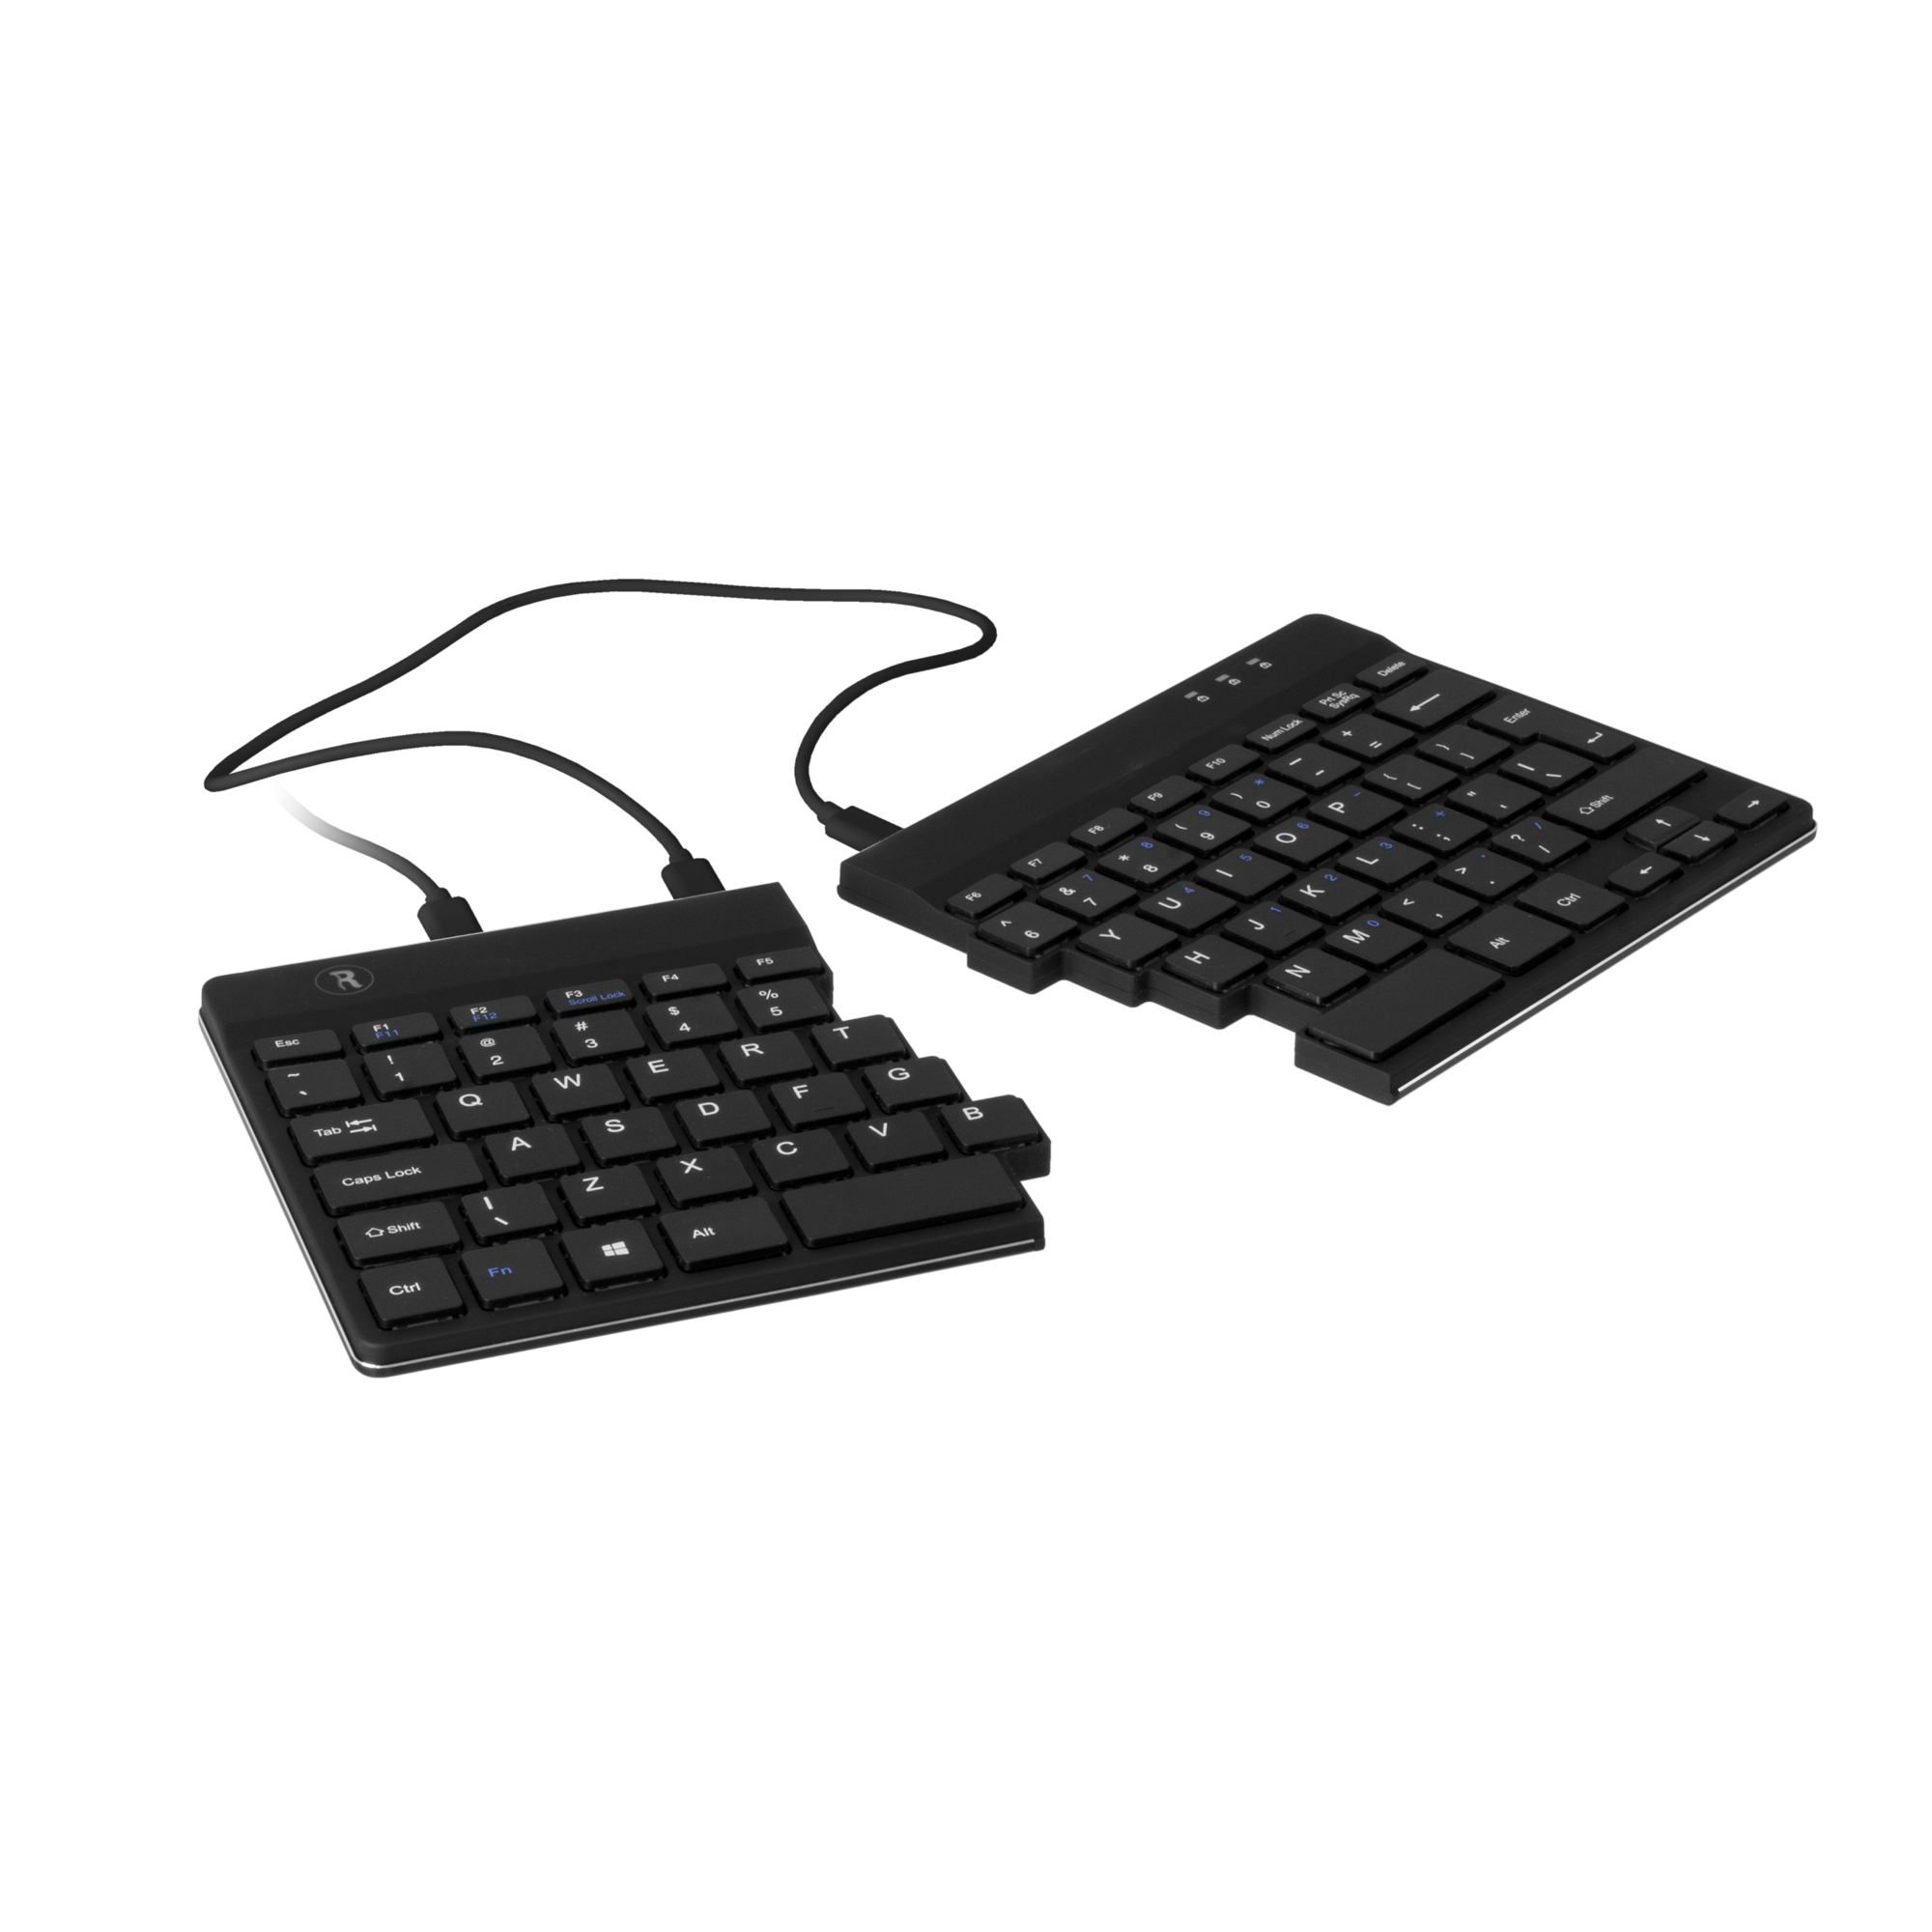 R-GO TOOLS RGOSP-UKWIBL SPLIT ERGONOMIC KEYBOARD, QWERTY (UK), BLACK, WIRED